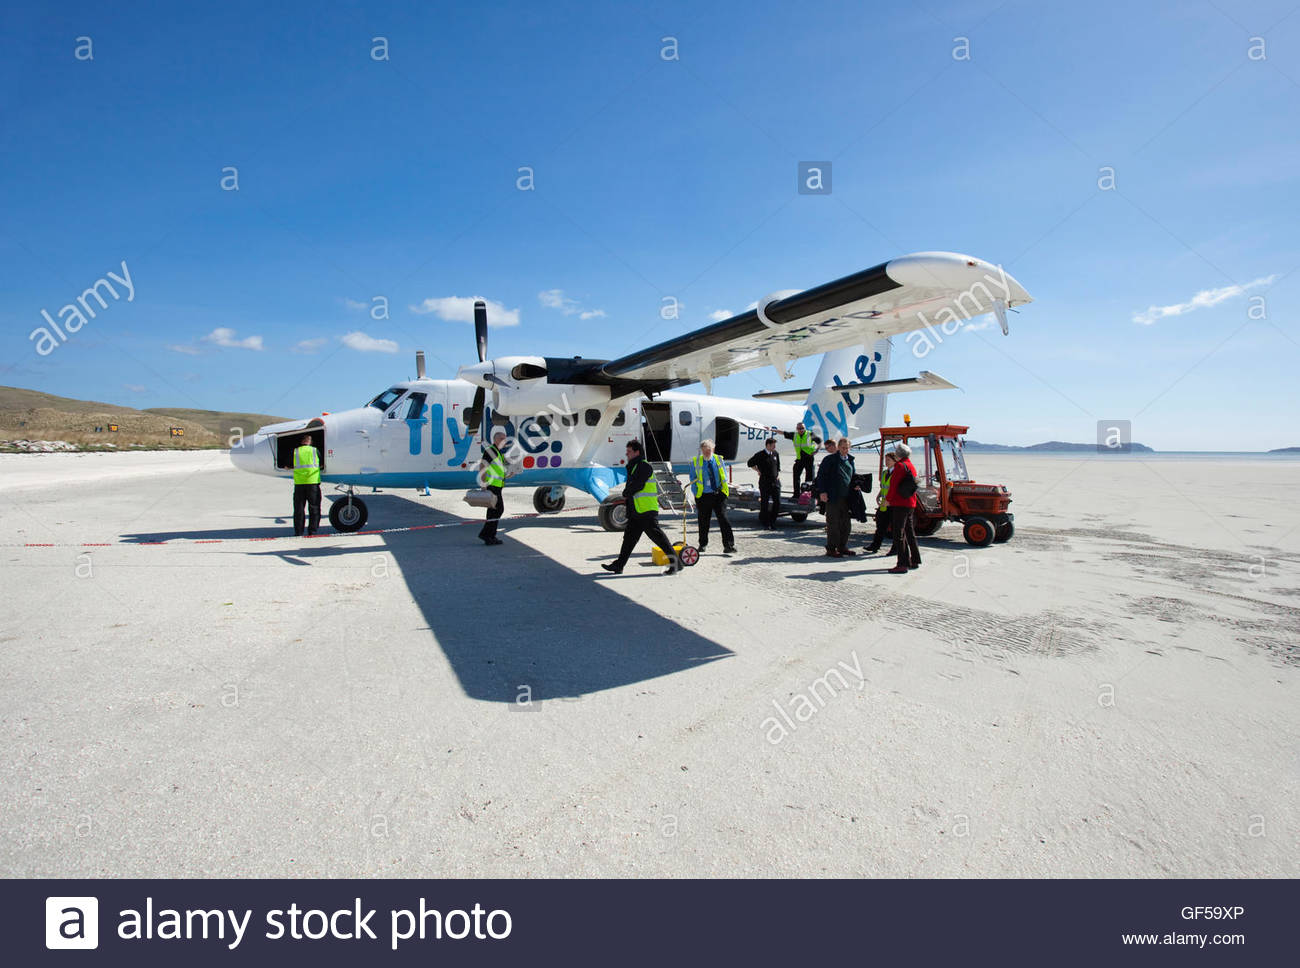 Ground staff prepare an aeroplane for take off on Traigh Mhor Beach - the runway for the Isle of Barra Airport, - Stock Image